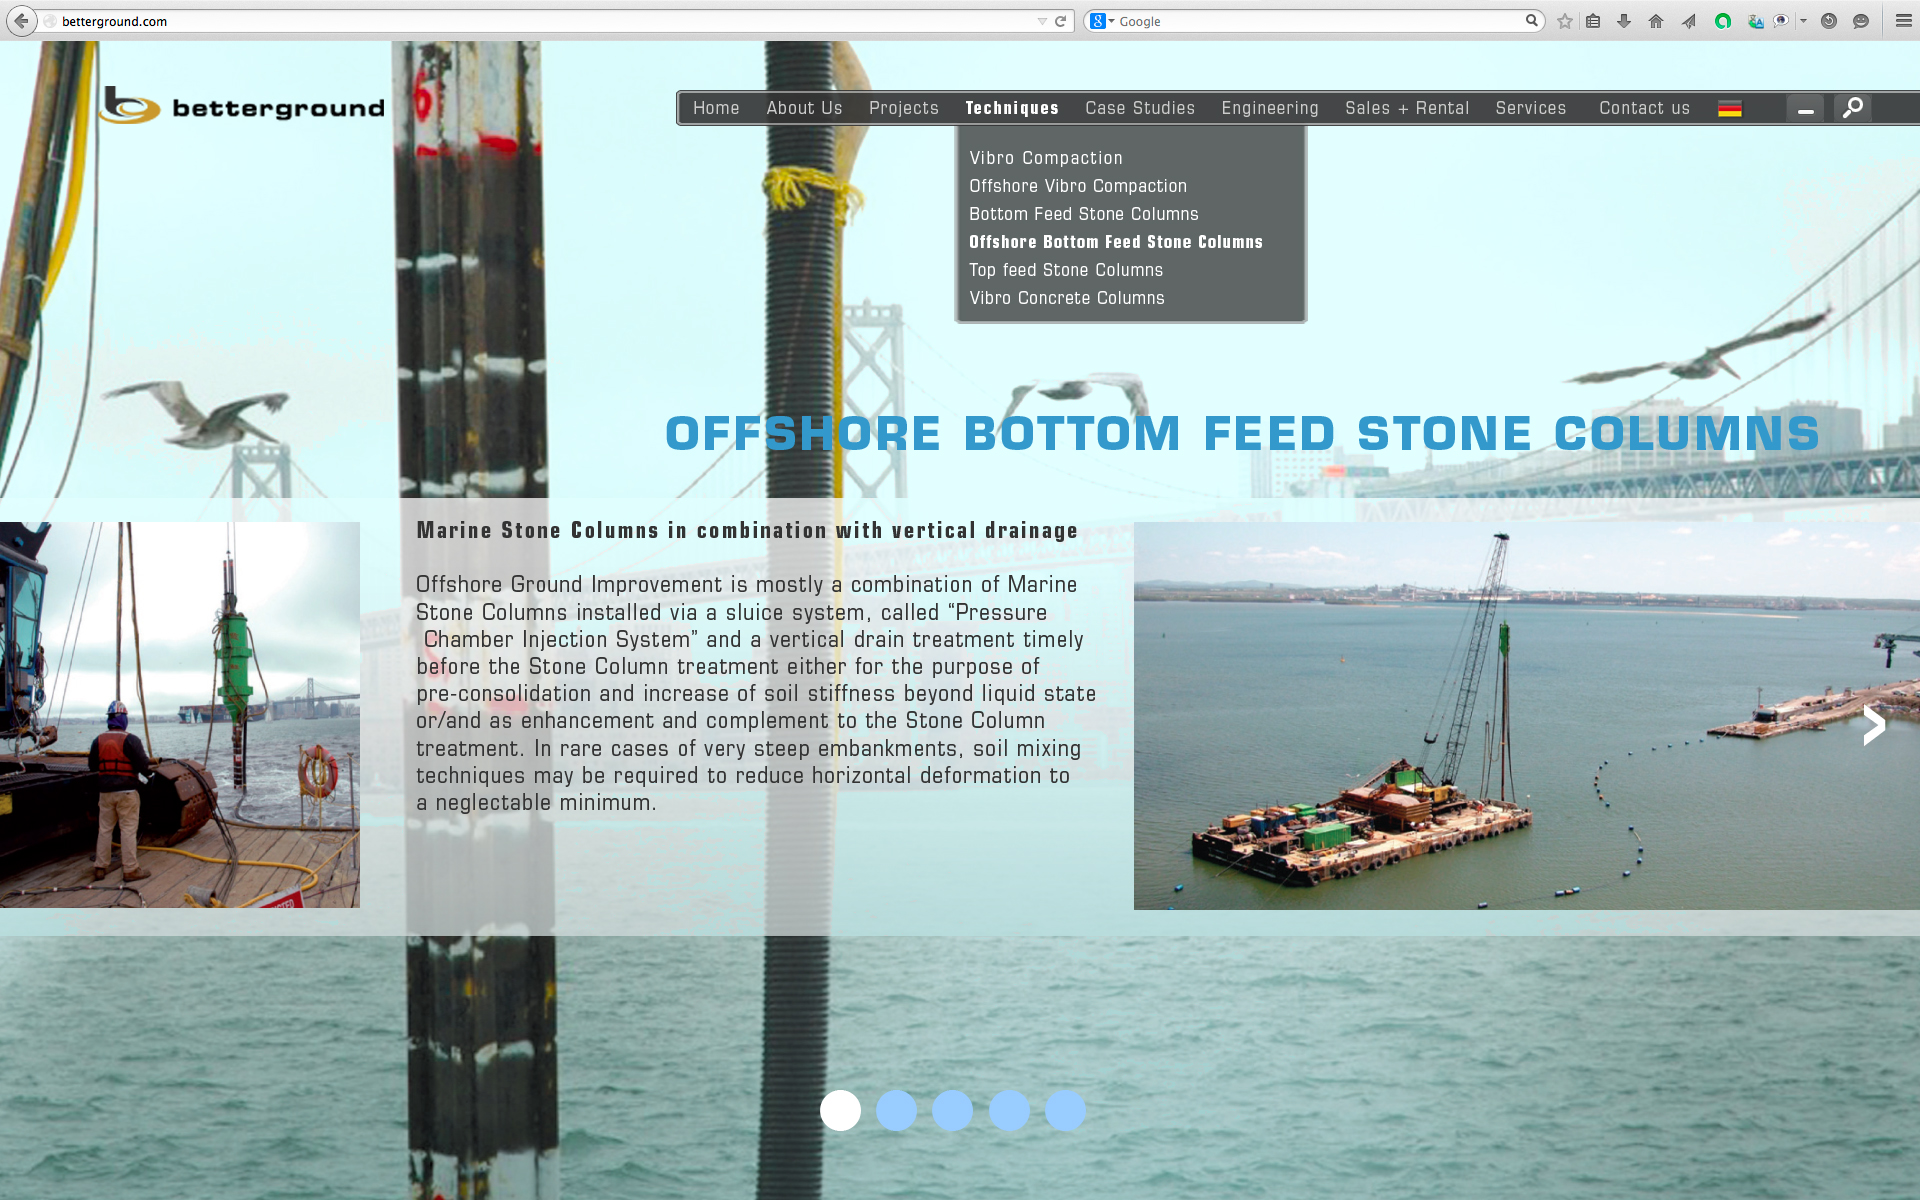 Offshore Bottom Feed Stone Columns 1